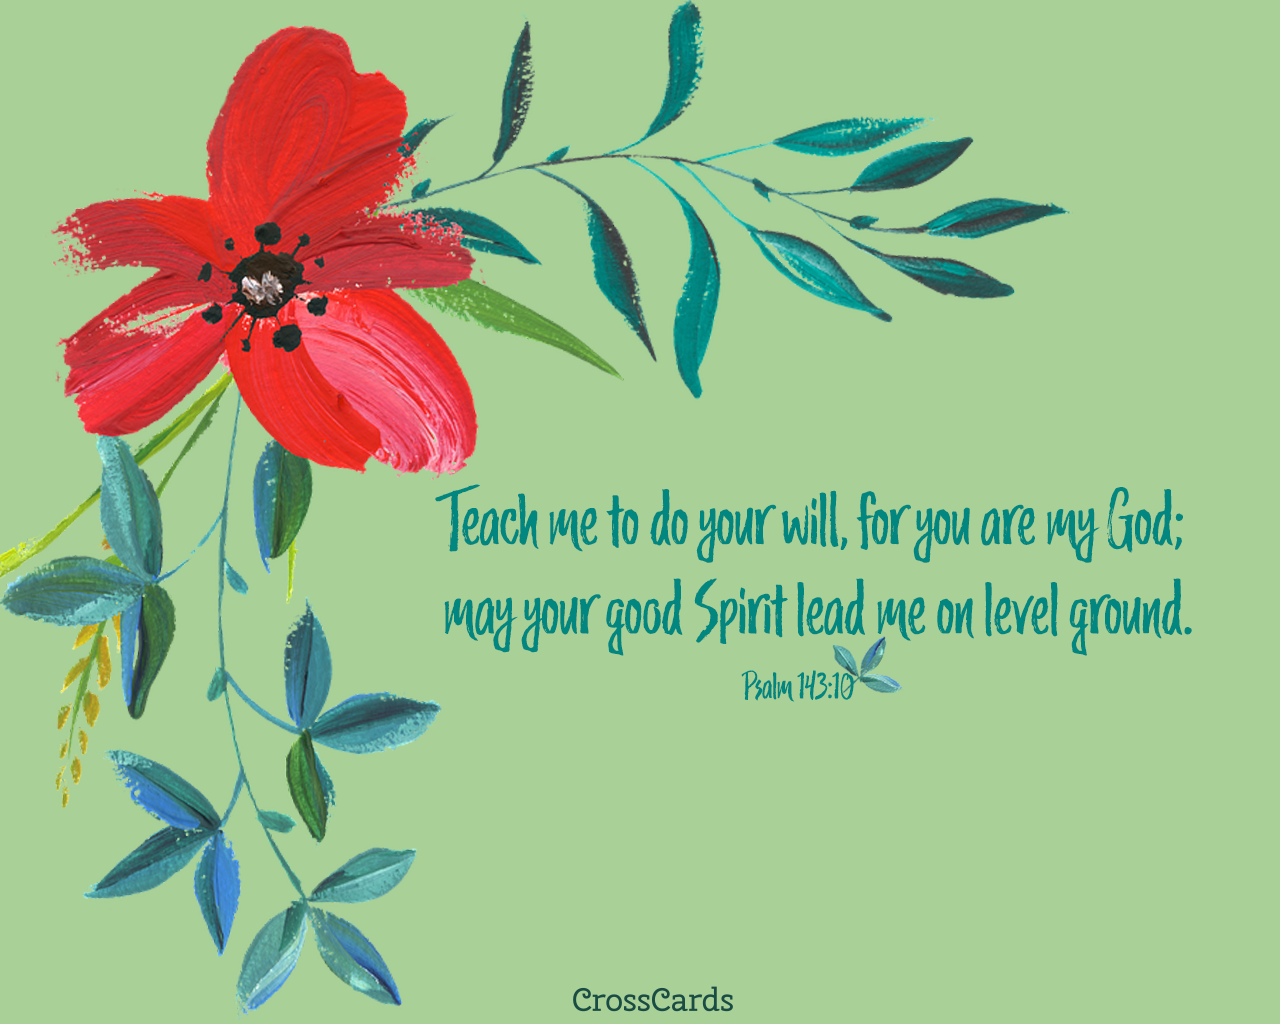 Psalm 14310 Teach me to Do Your Will for You are my God   Bible 1280x1024